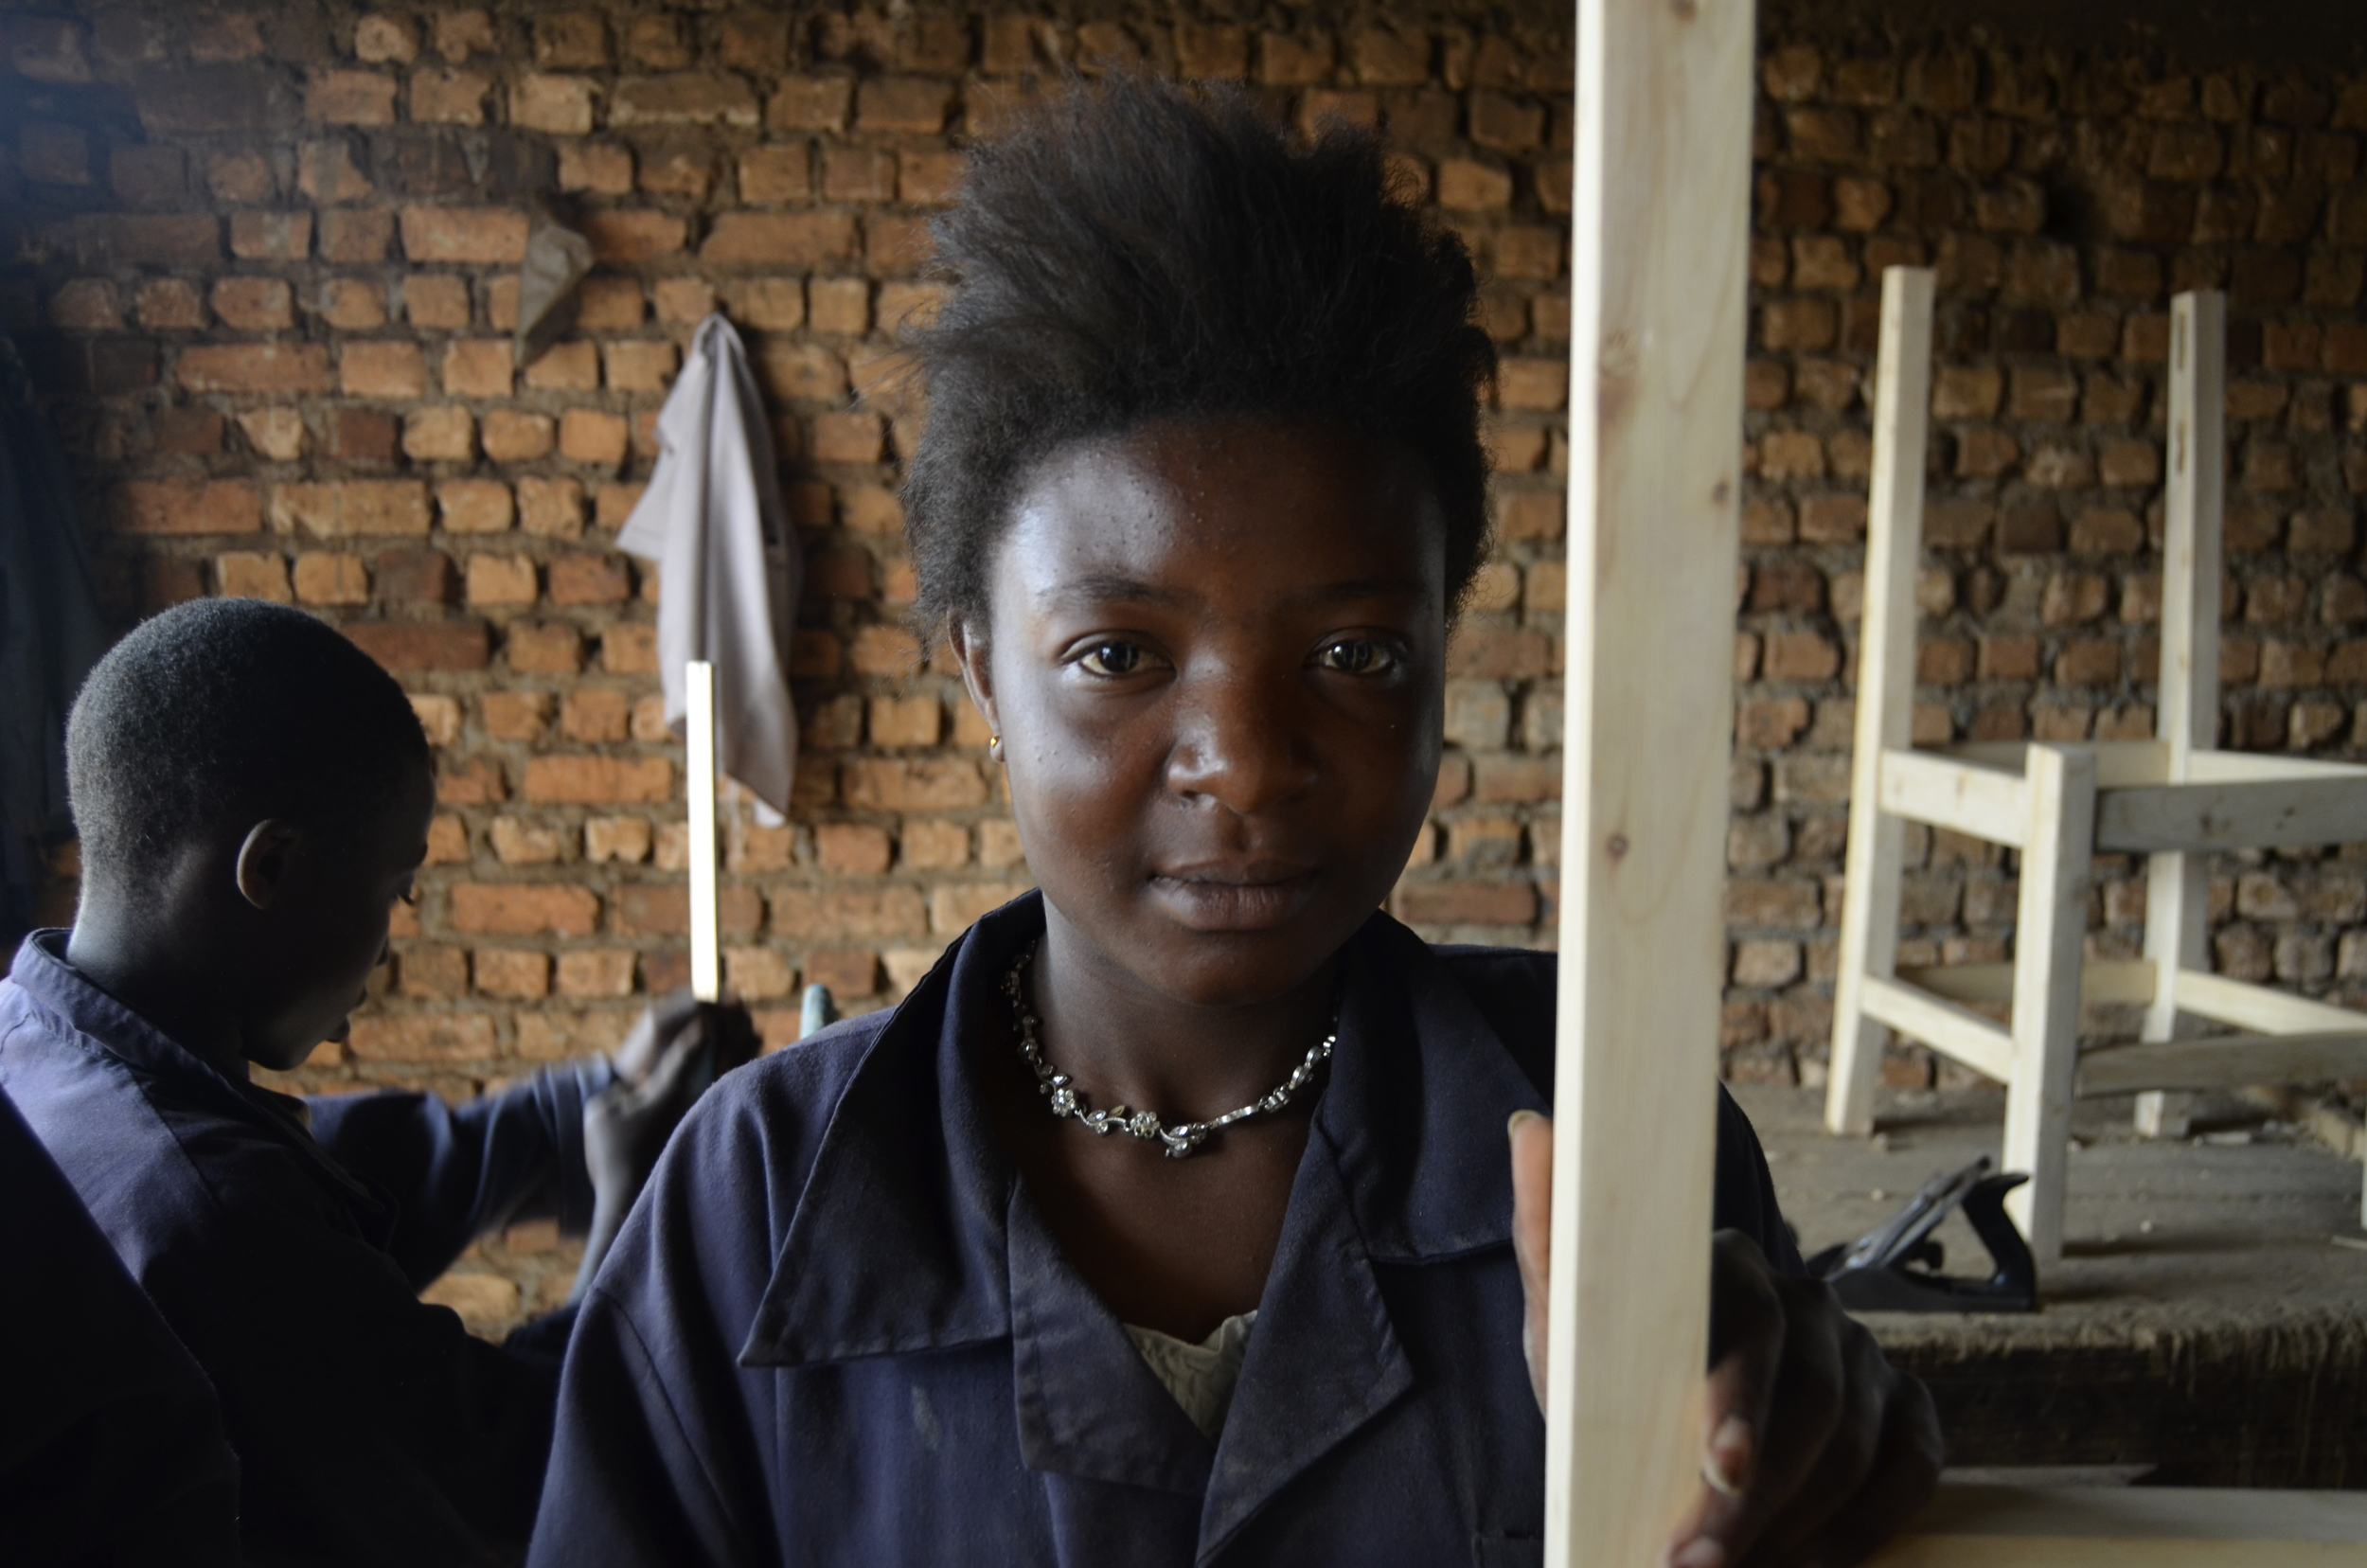 Woodworking student at Let Africa Live in classroom at training center in Bukavu, city in the South Kivu province of the DRC.